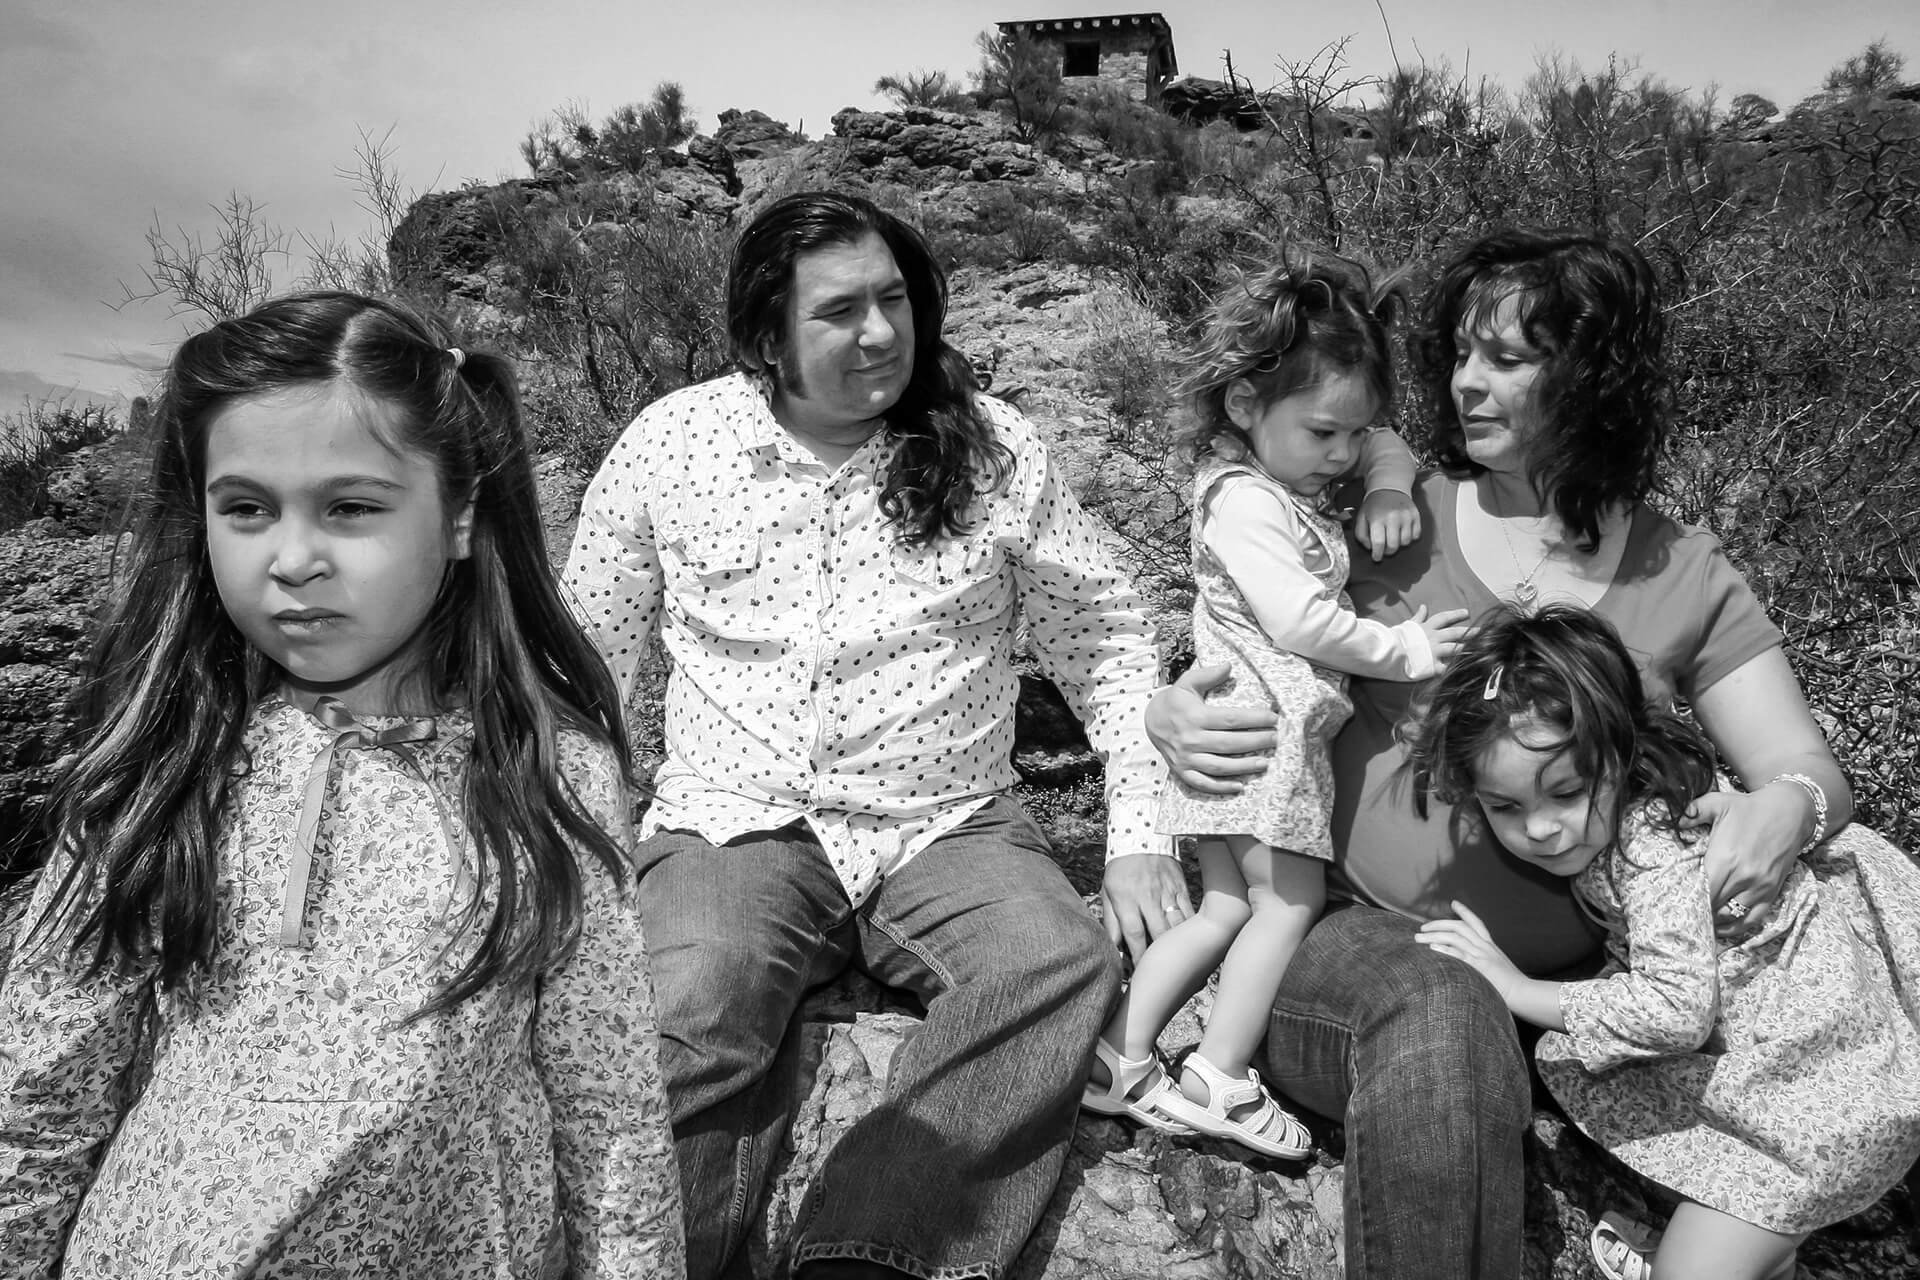 Some of the best family portraits are completely unplanned and uncomposed. The three little daughters were not interested in posing, sitting still or smiling, not one bit.